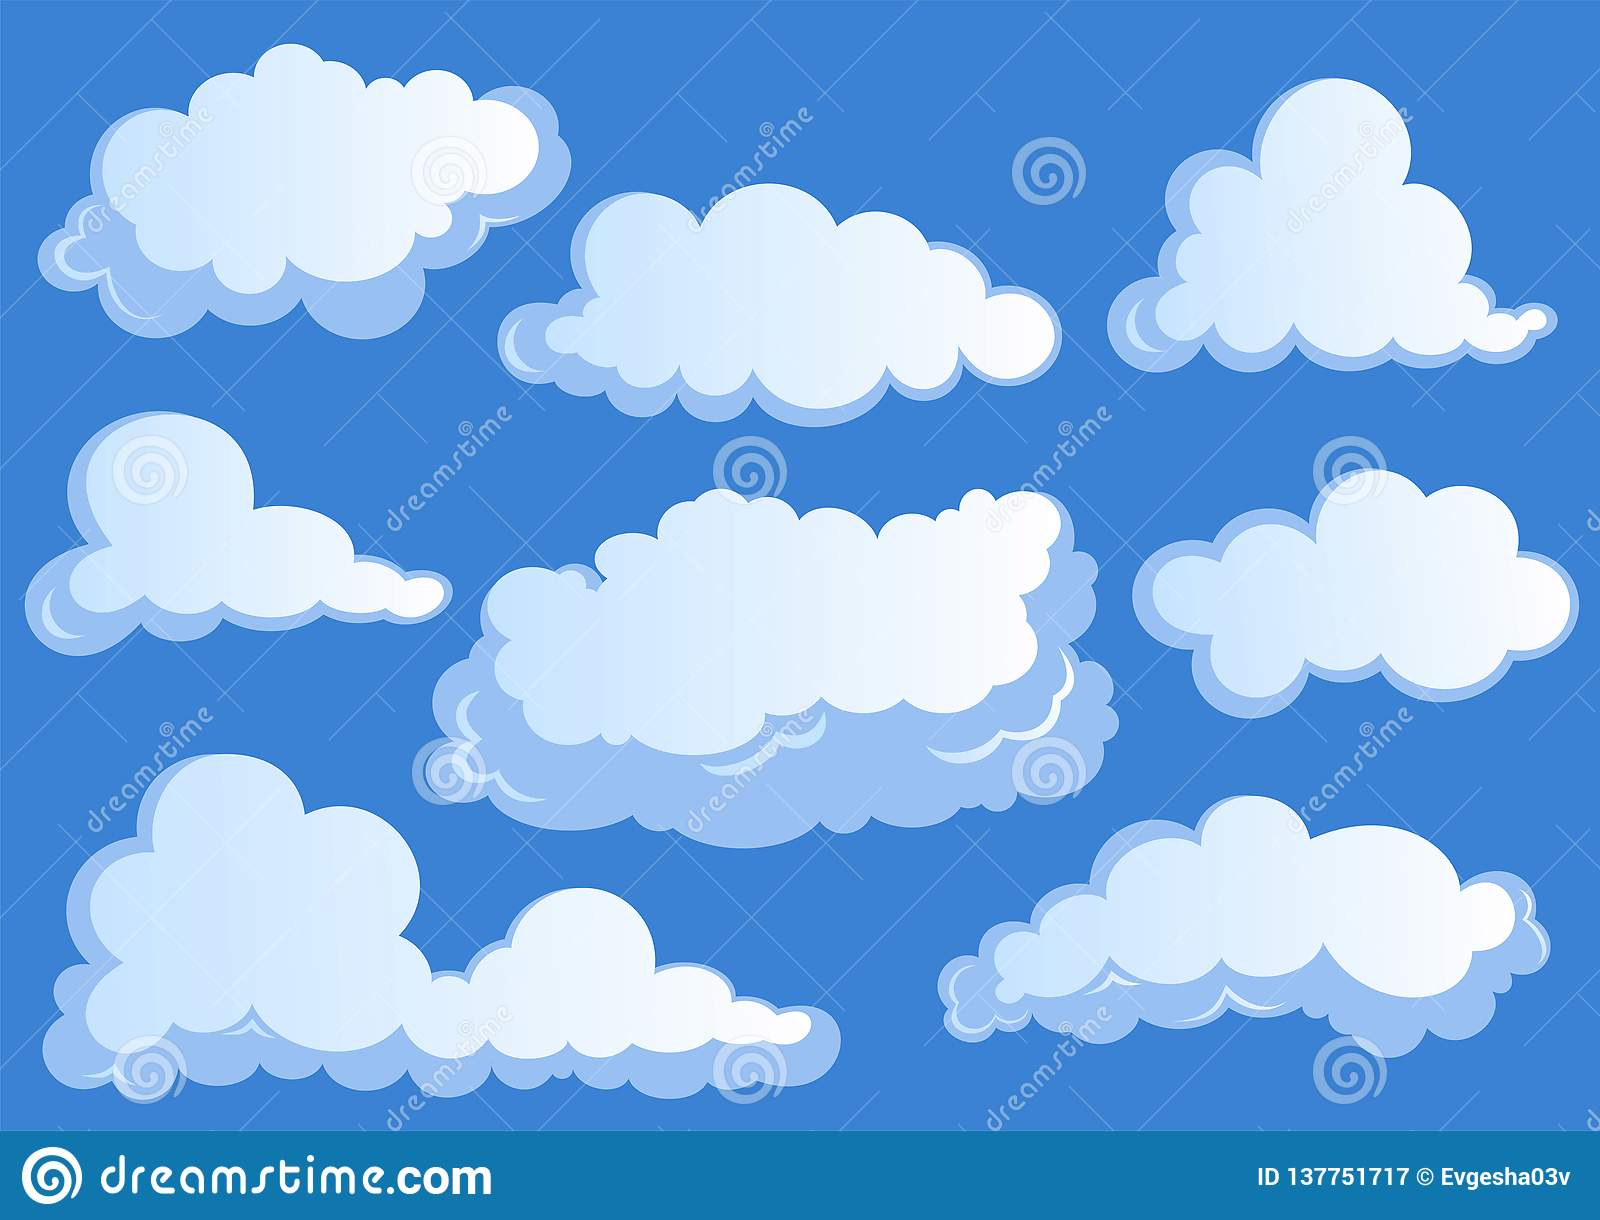 Set of white clouds, cloud icons on blue background